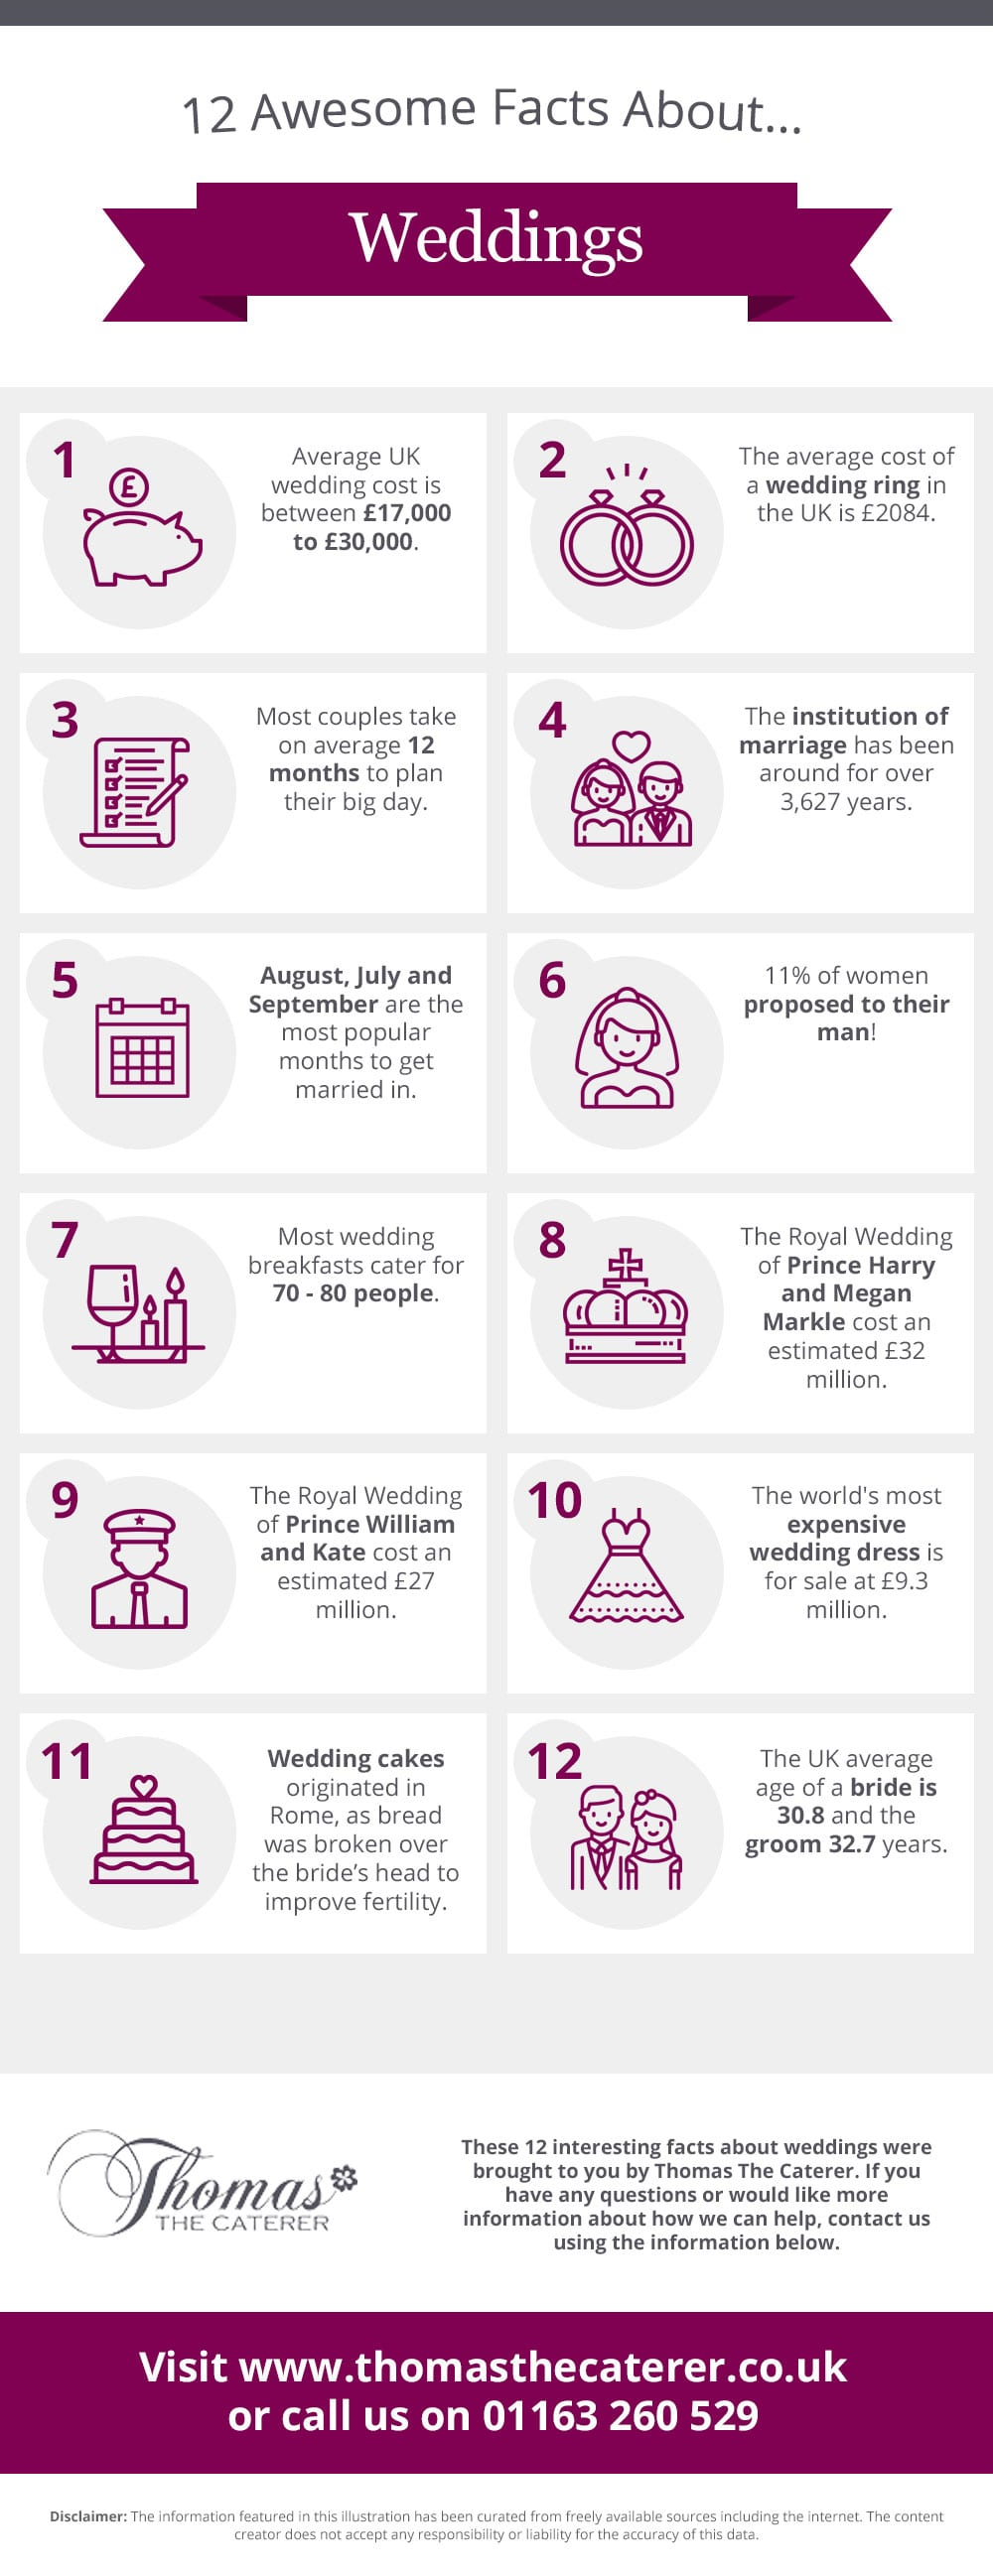 12 Awesome Facts About Weddings